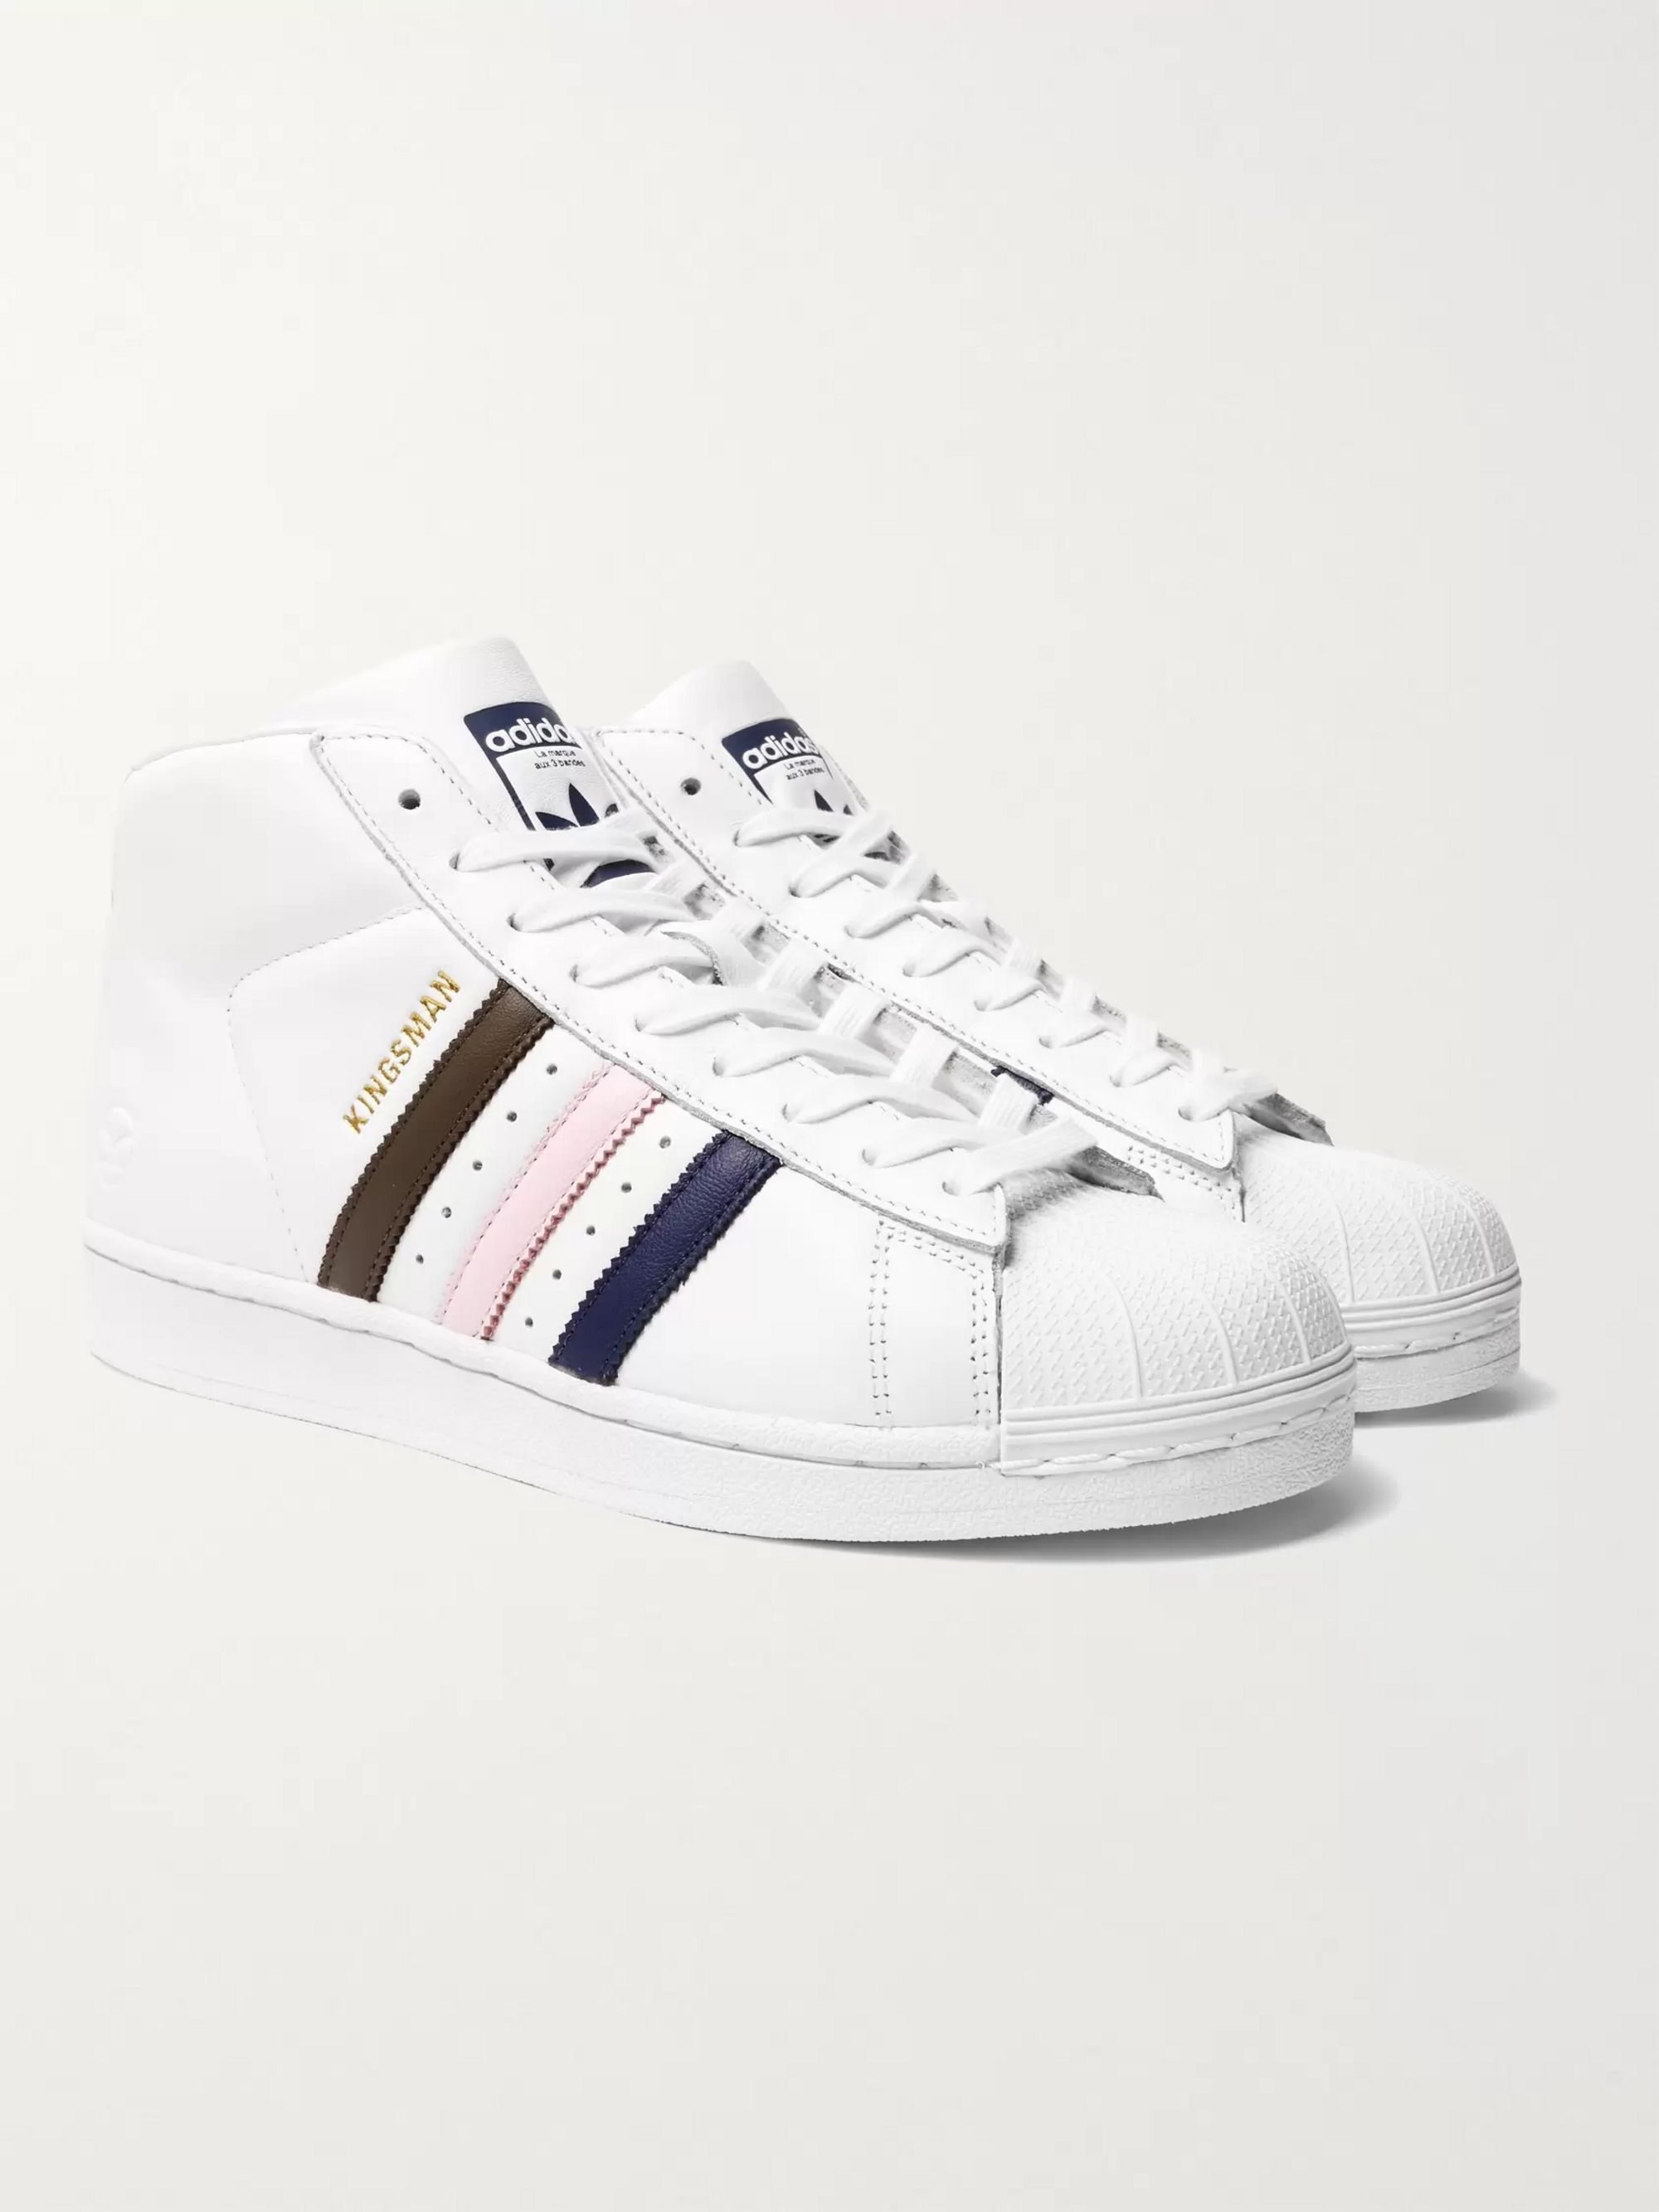 Pink shell toe superstar adidas shoes